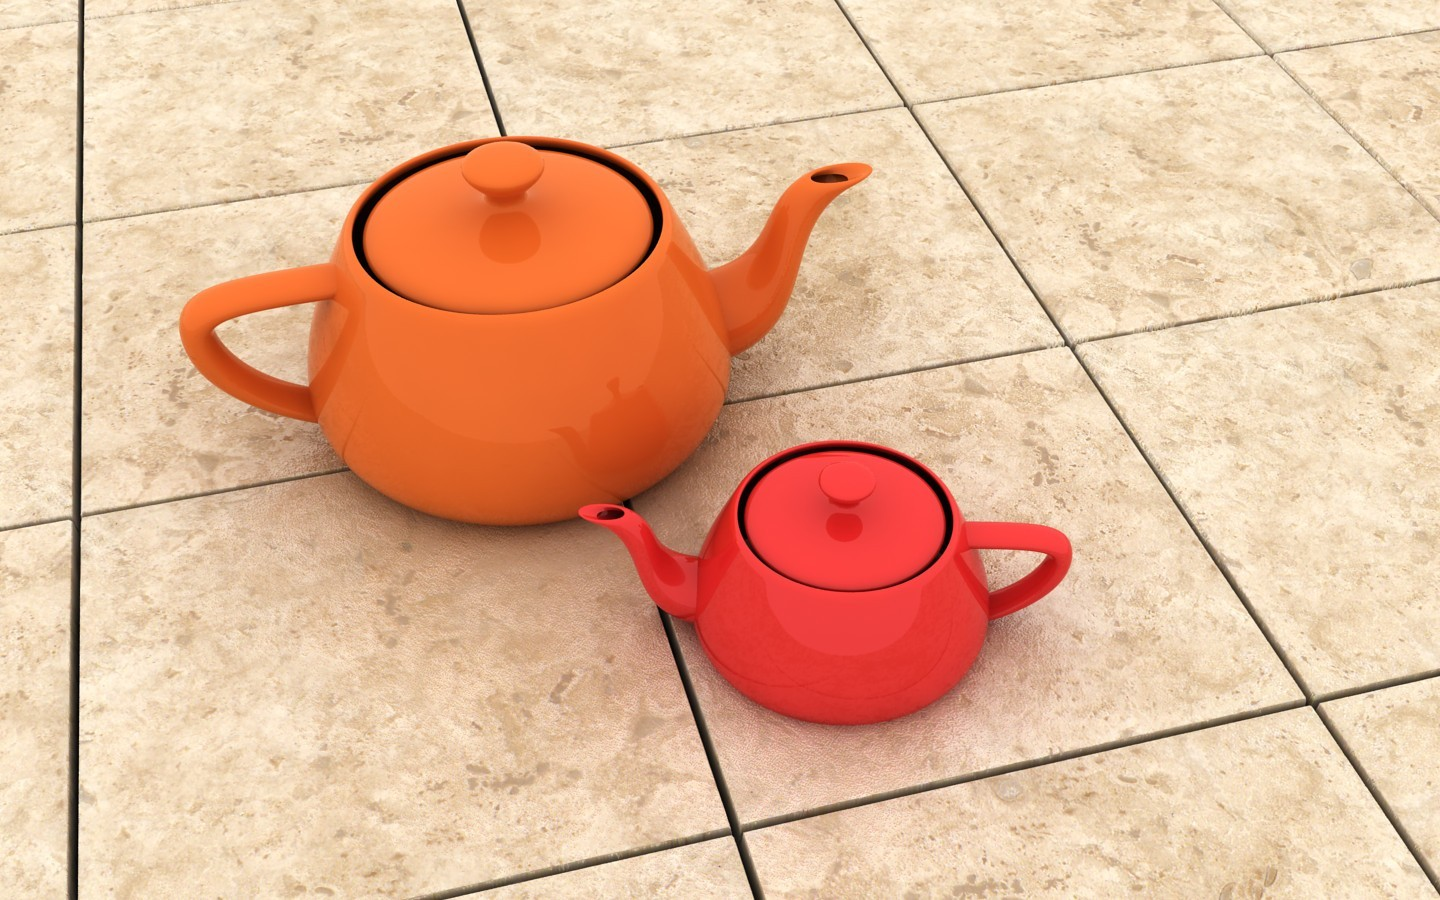 floor animation teapots 3d HD Wallpaper